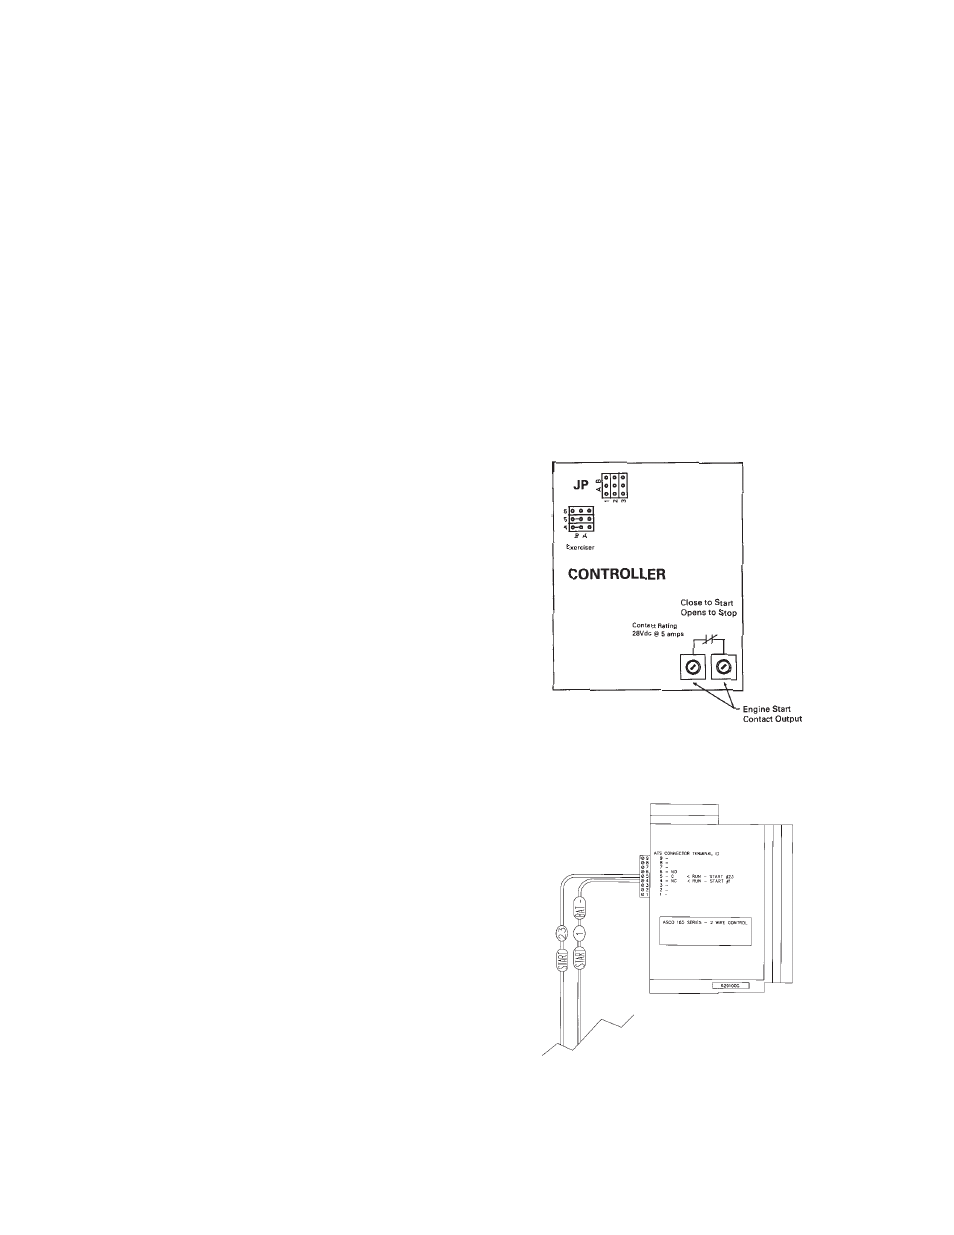 Winco ULPSS90/A WITH BASLER DGC-2020 ENGINE CONTROL User Manual